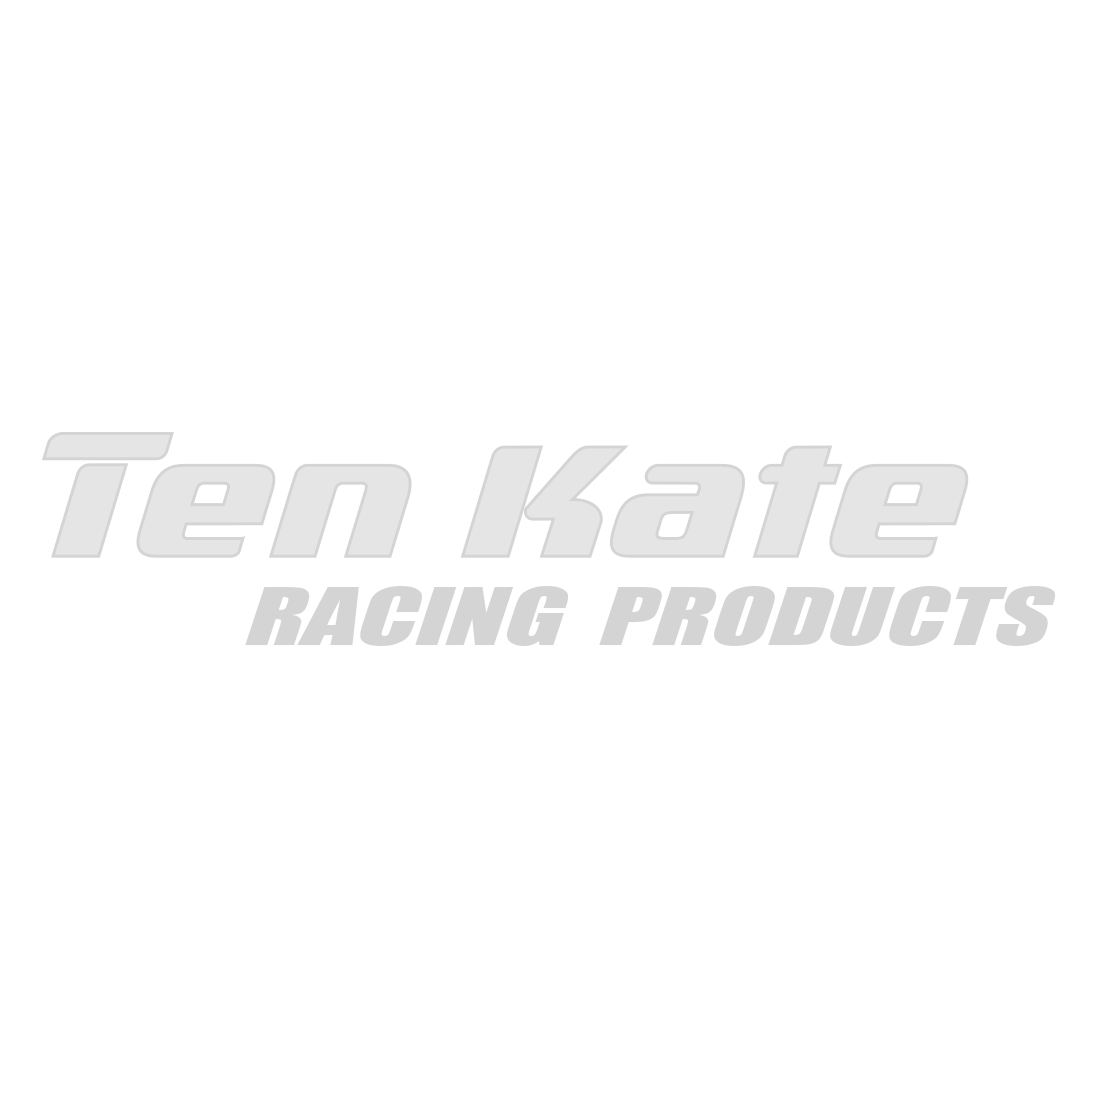 Tenkateracingproducts com | The shop for all your motorcycle